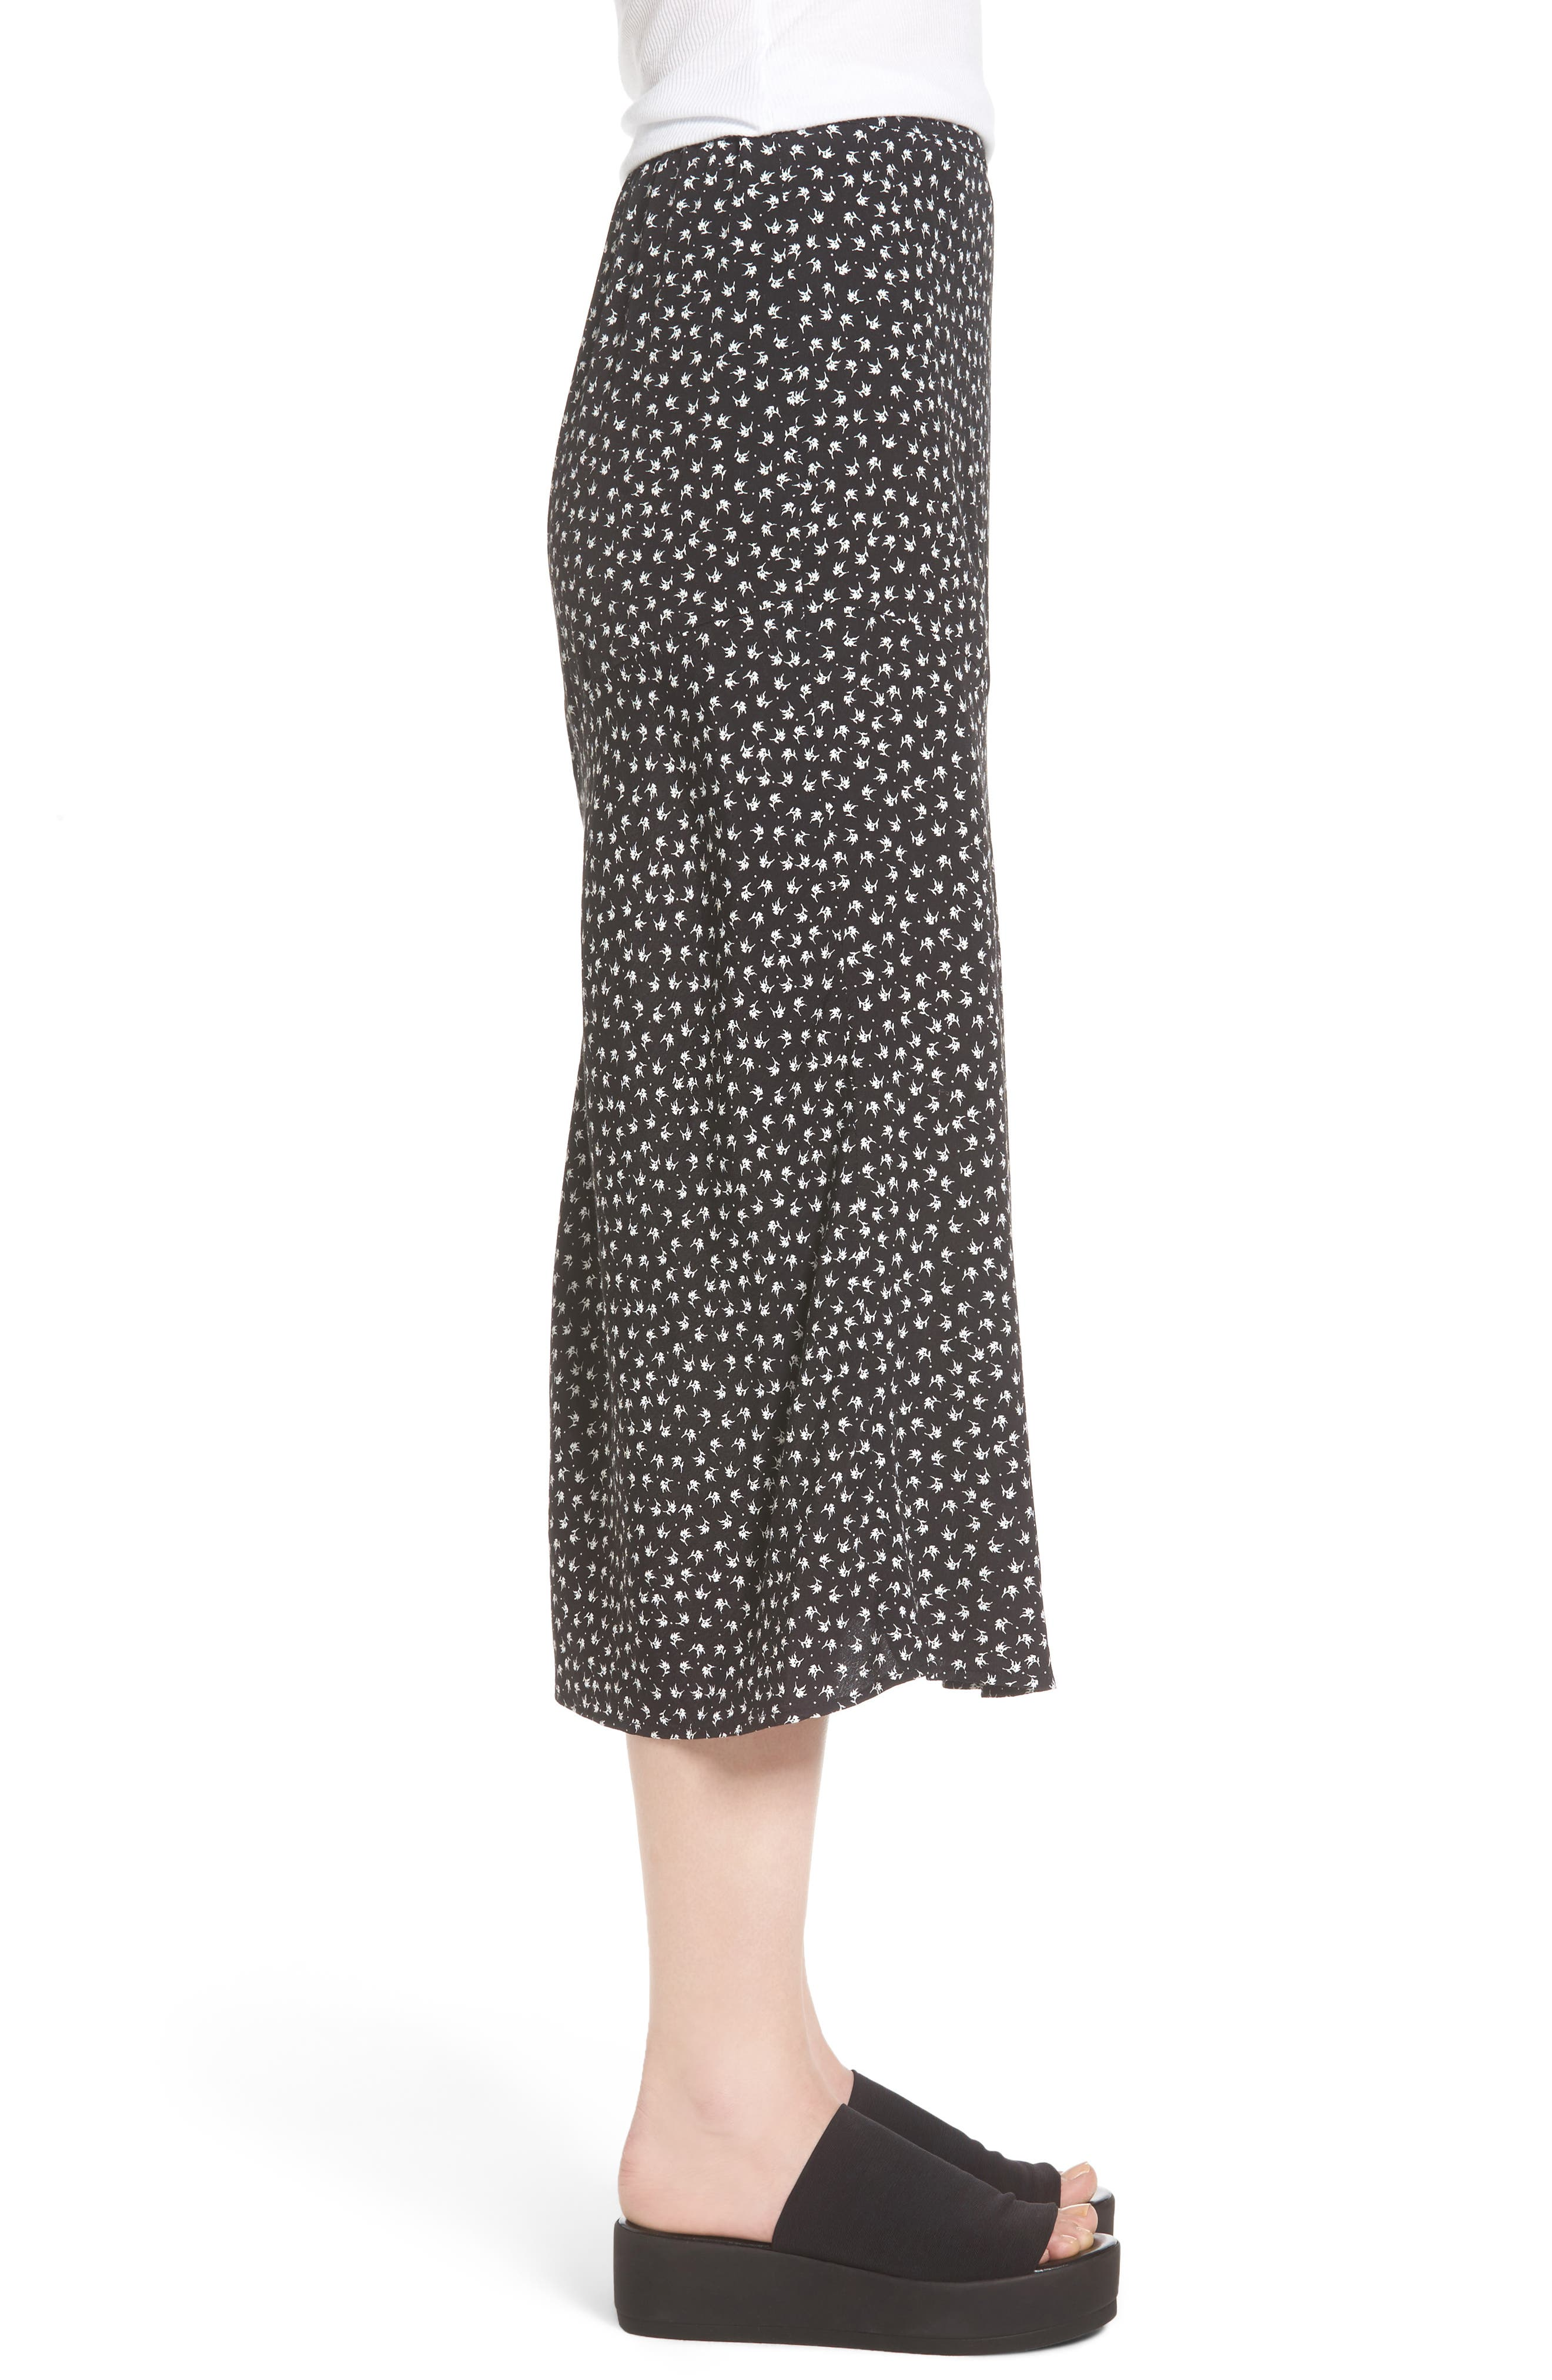 Print Bias Cut Skirt,                             Alternate thumbnail 3, color,                             Black Tsd Stem